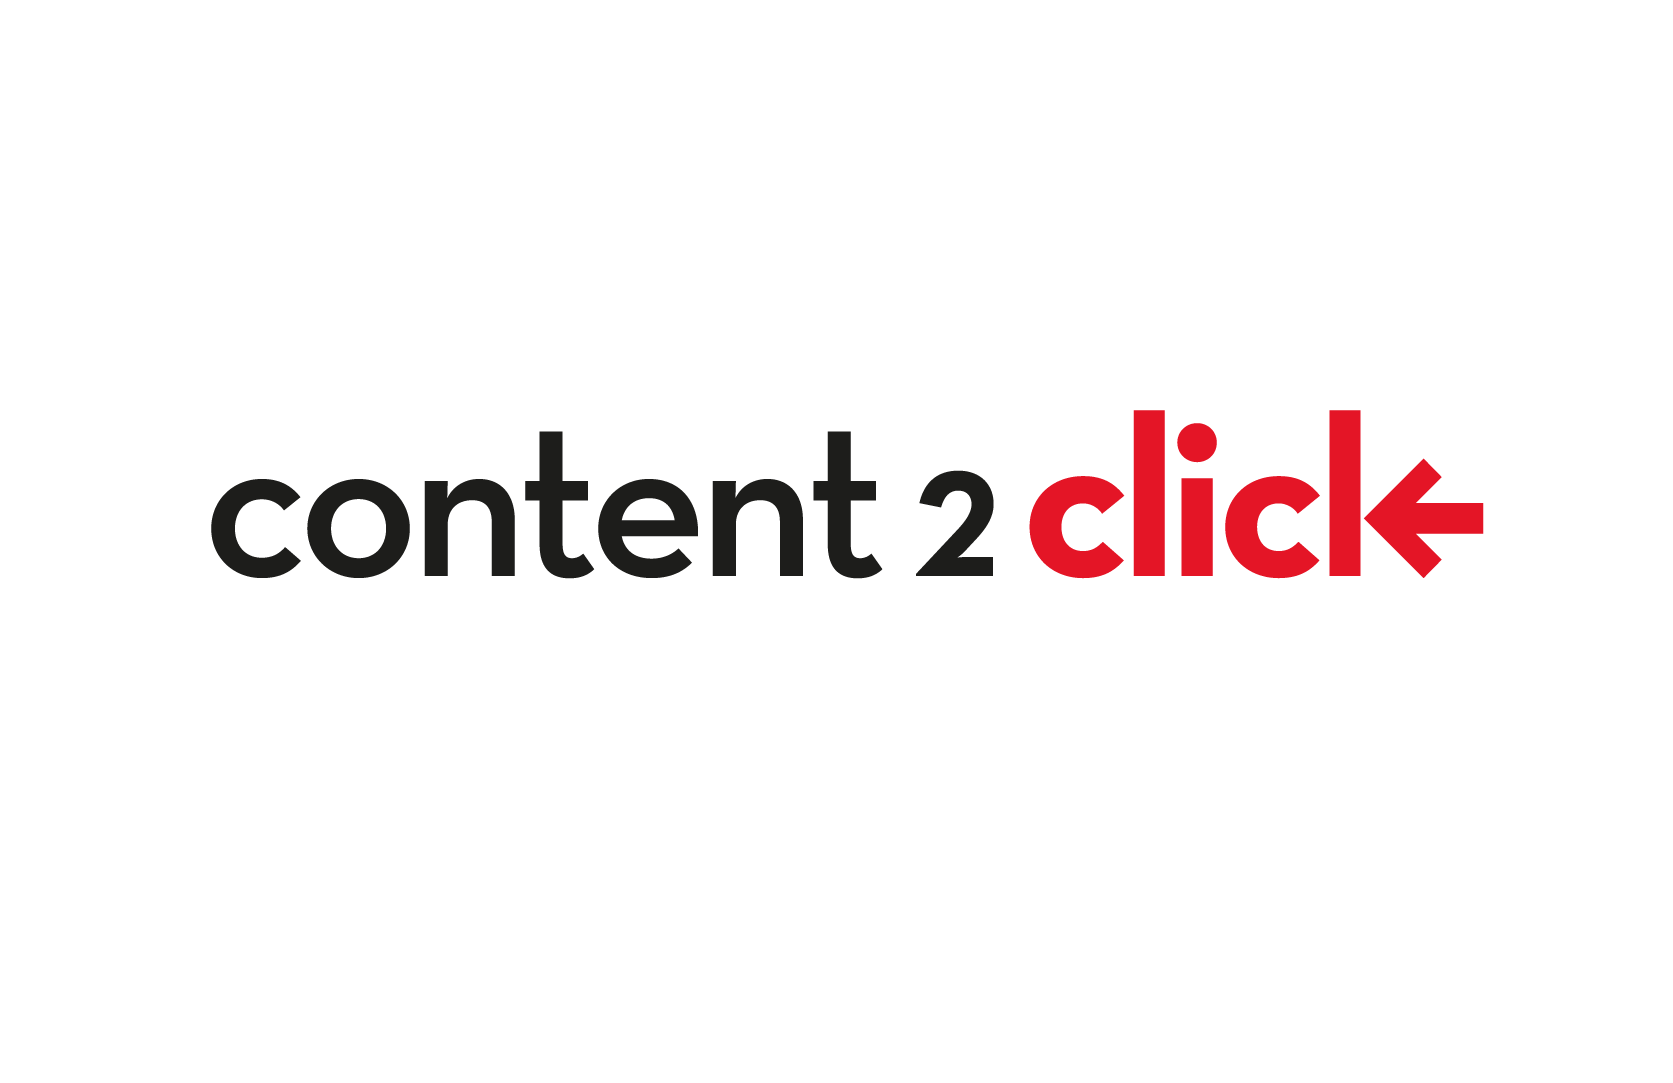 https://www.jes-marketing.nl/wp-content/uploads/2020/11/LOGO-content2click.png